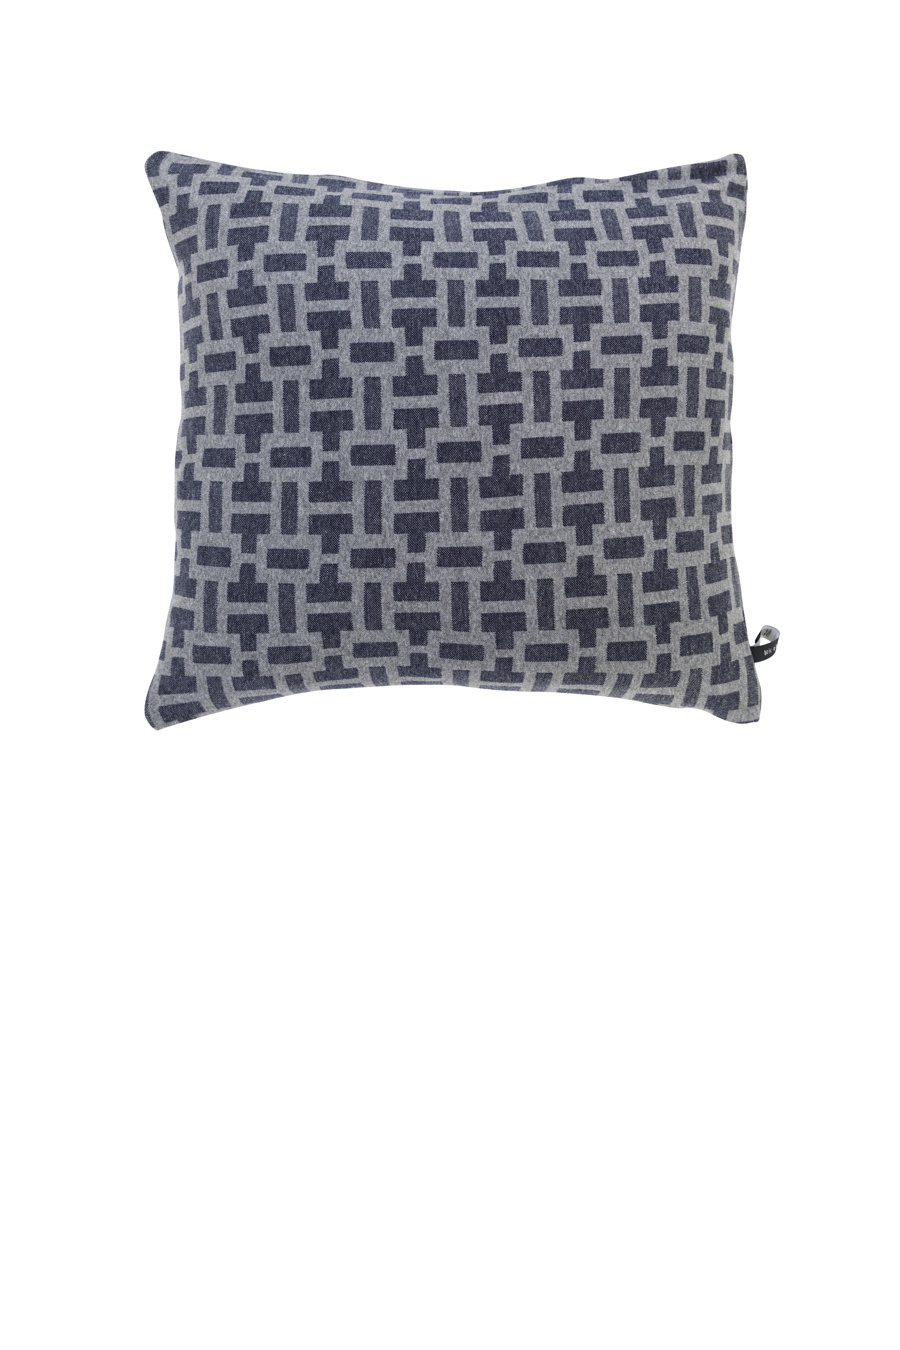 Dalby Pillow Case